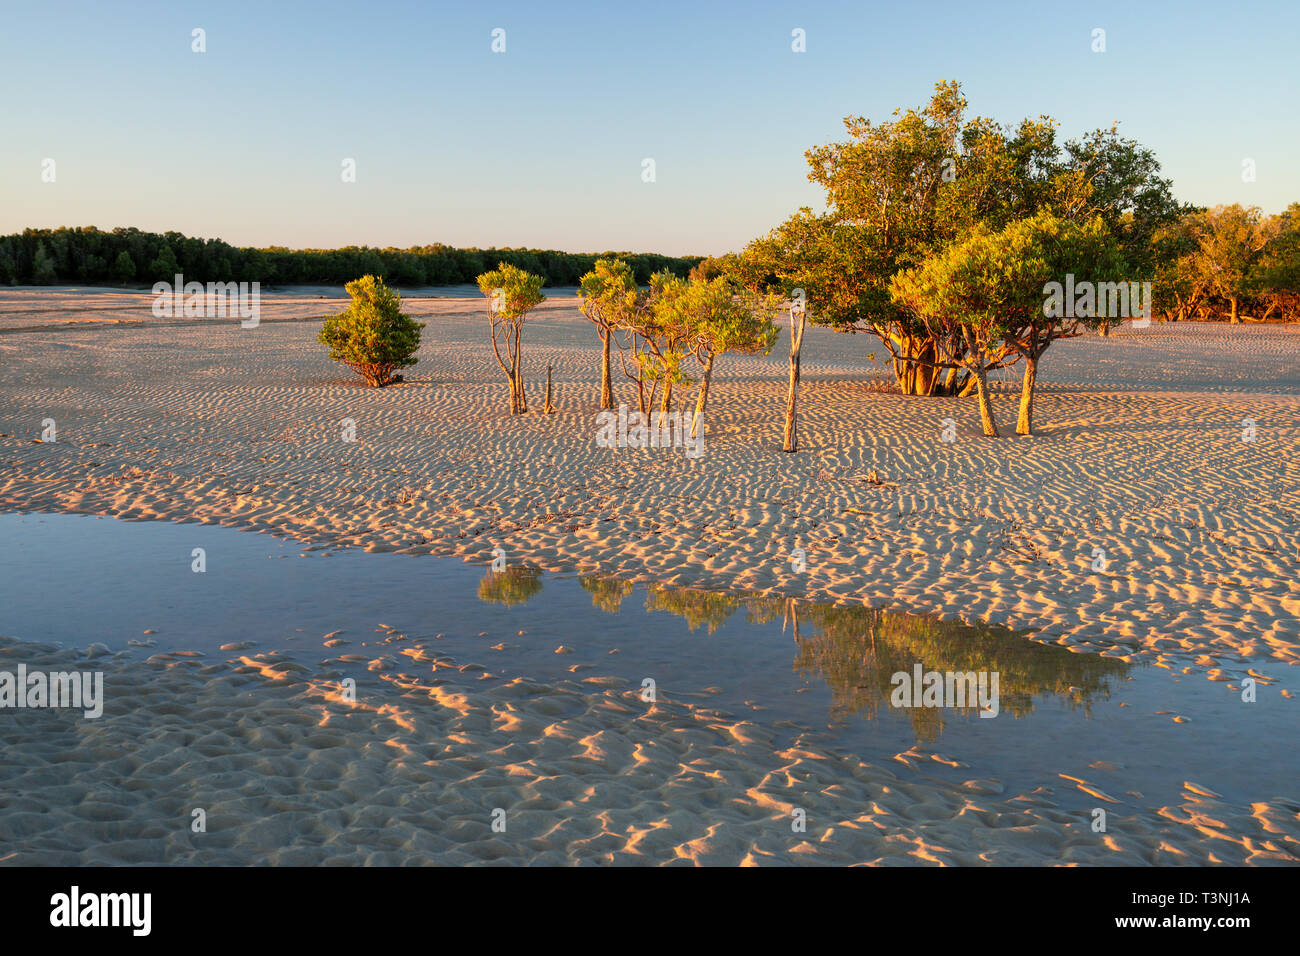 Mangroves growing on sandy tidal flat at Port Smith Western Australia - Stock Image